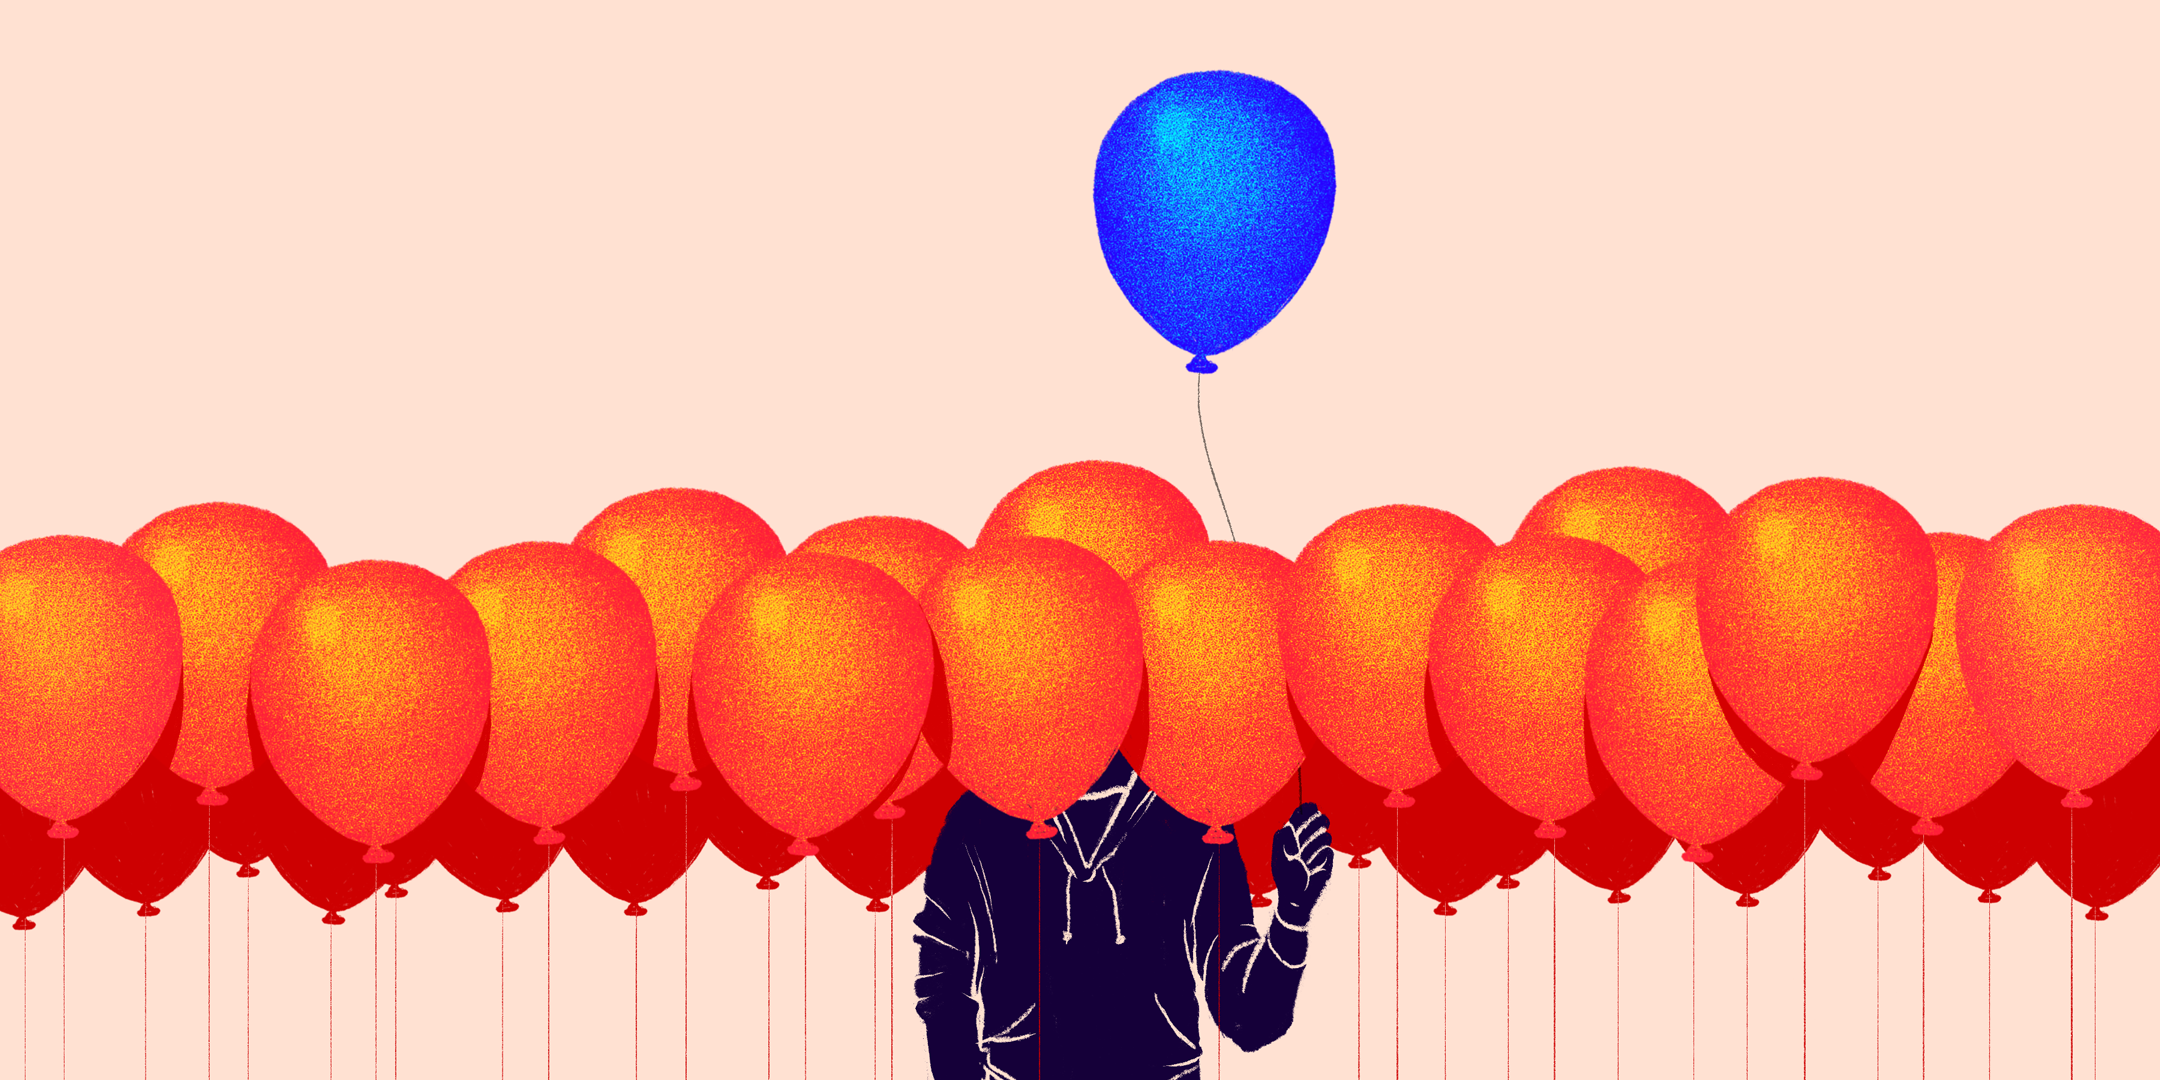 A figure engulfed in a sea of orange balloons, holding a blue balloon above all the rest